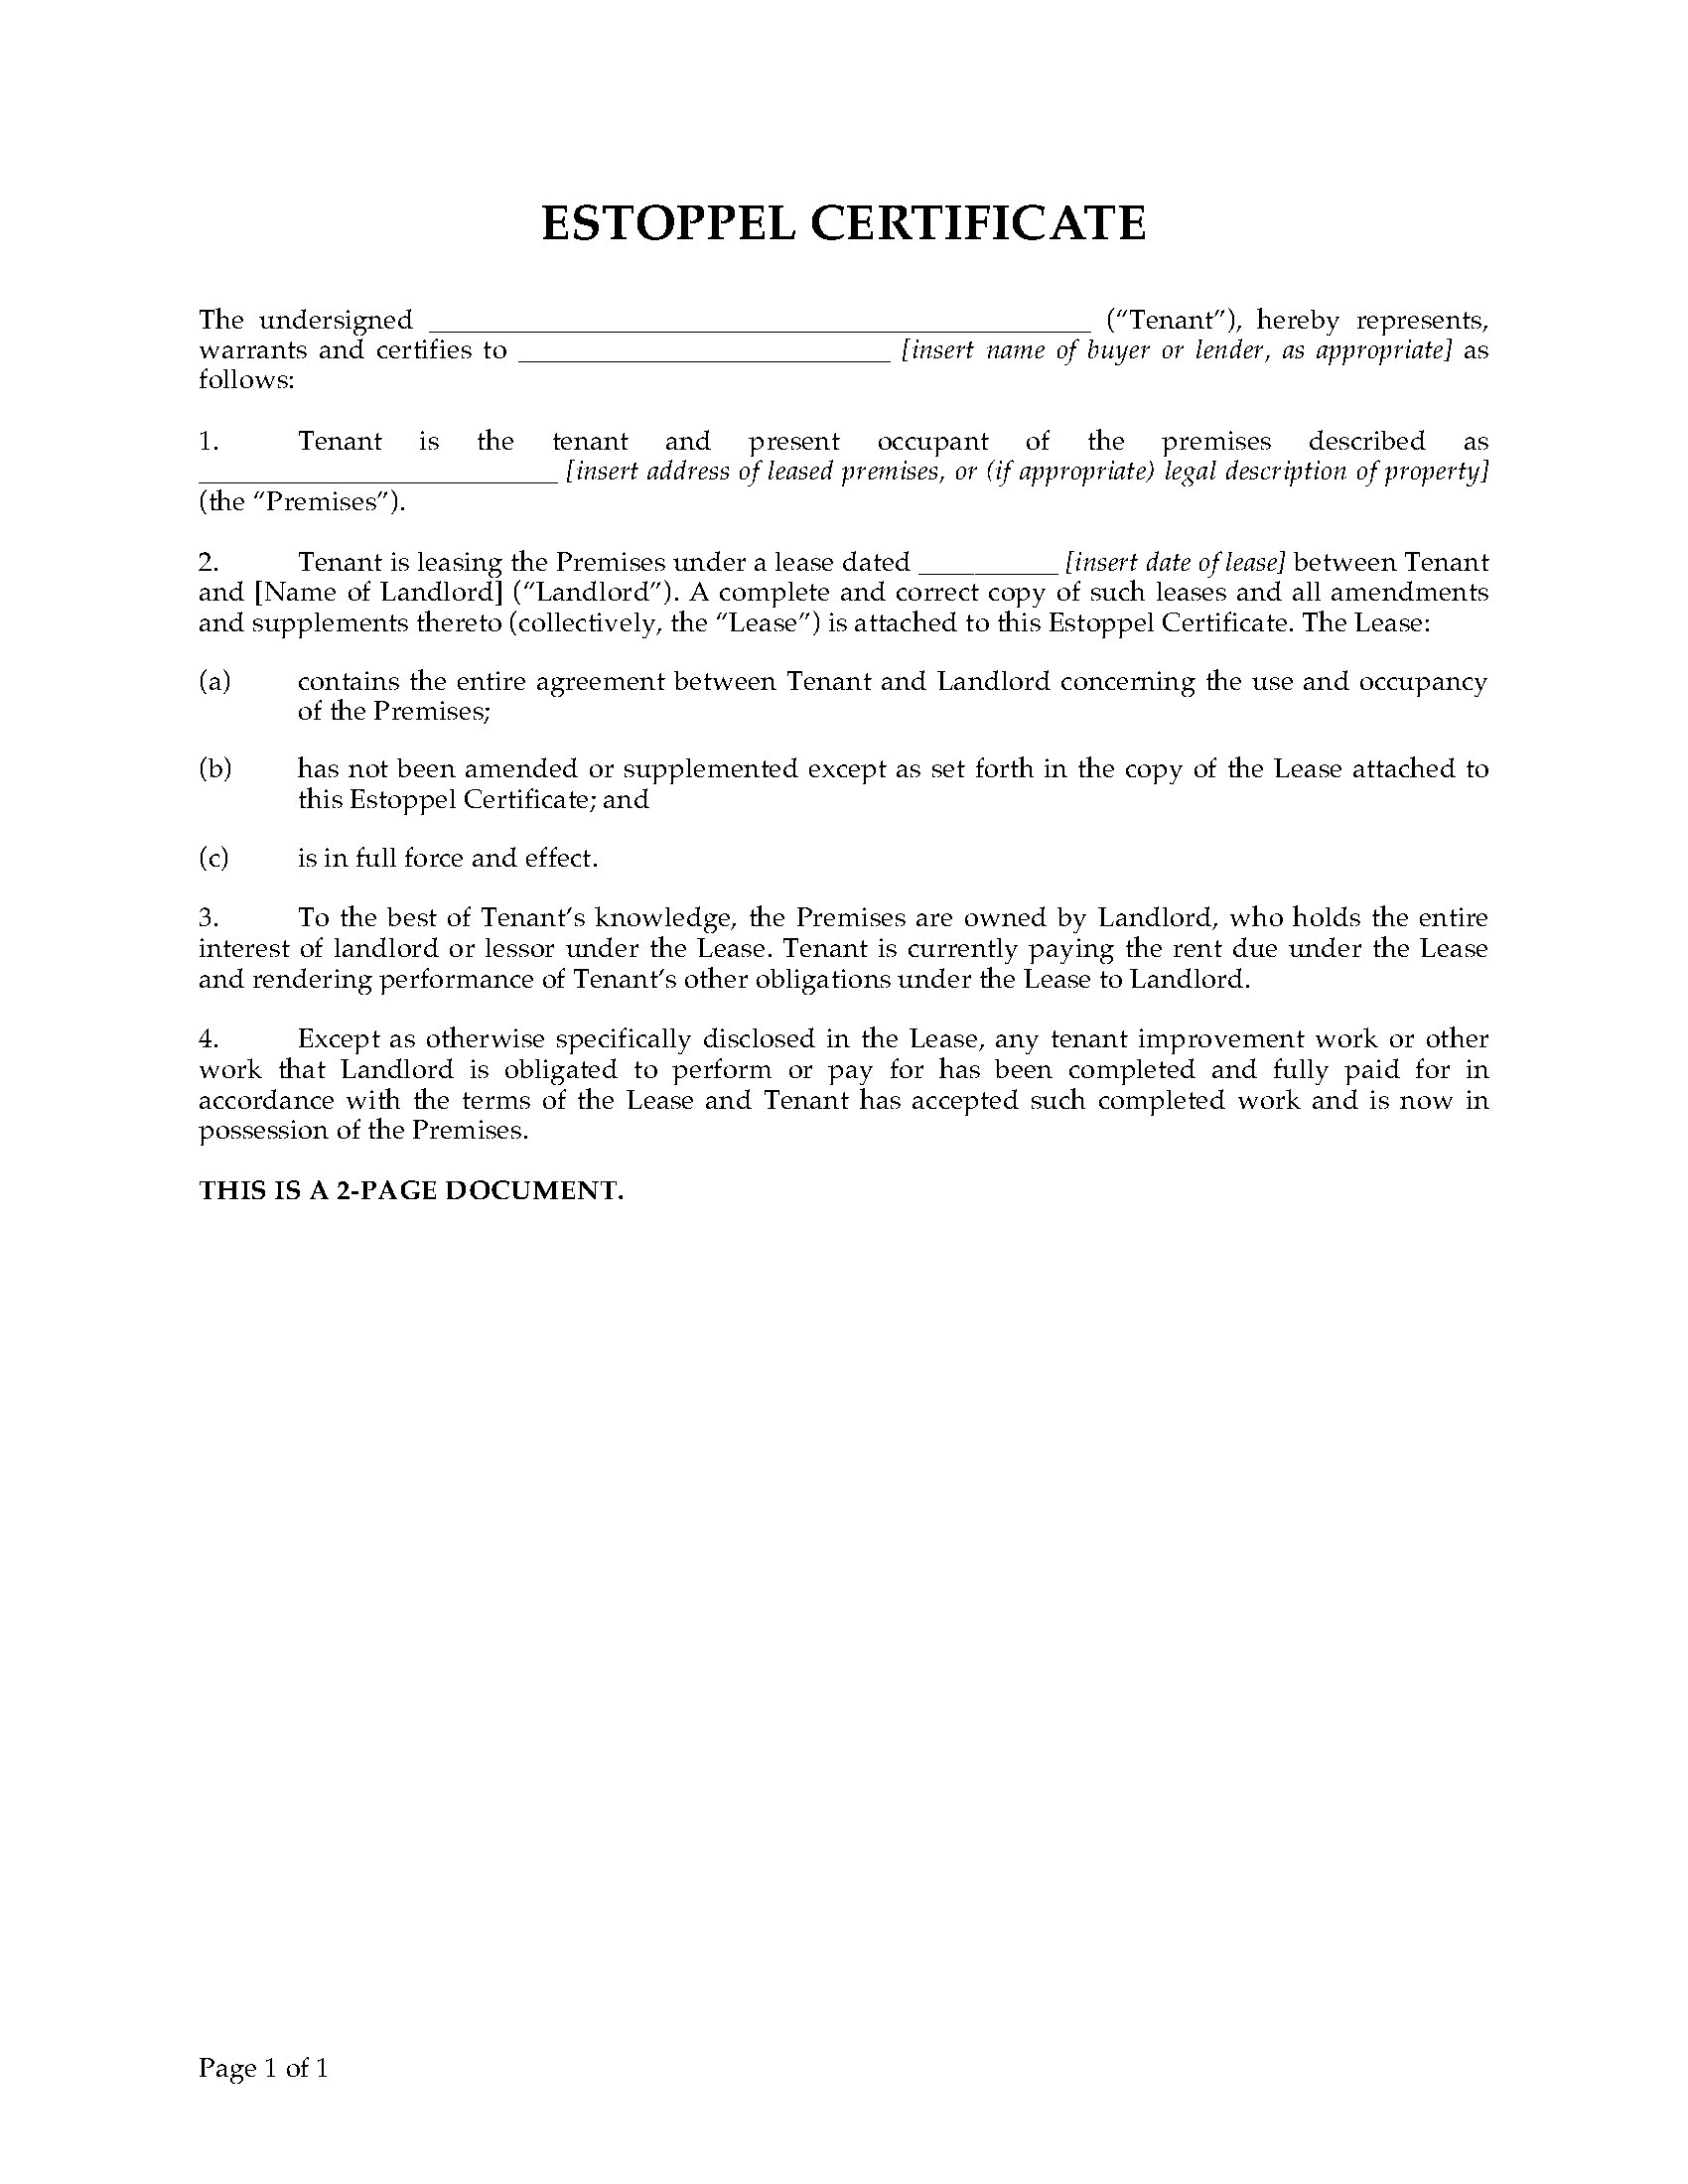 estoppel certificate template - usa commercial tenant estoppel certificate legal forms